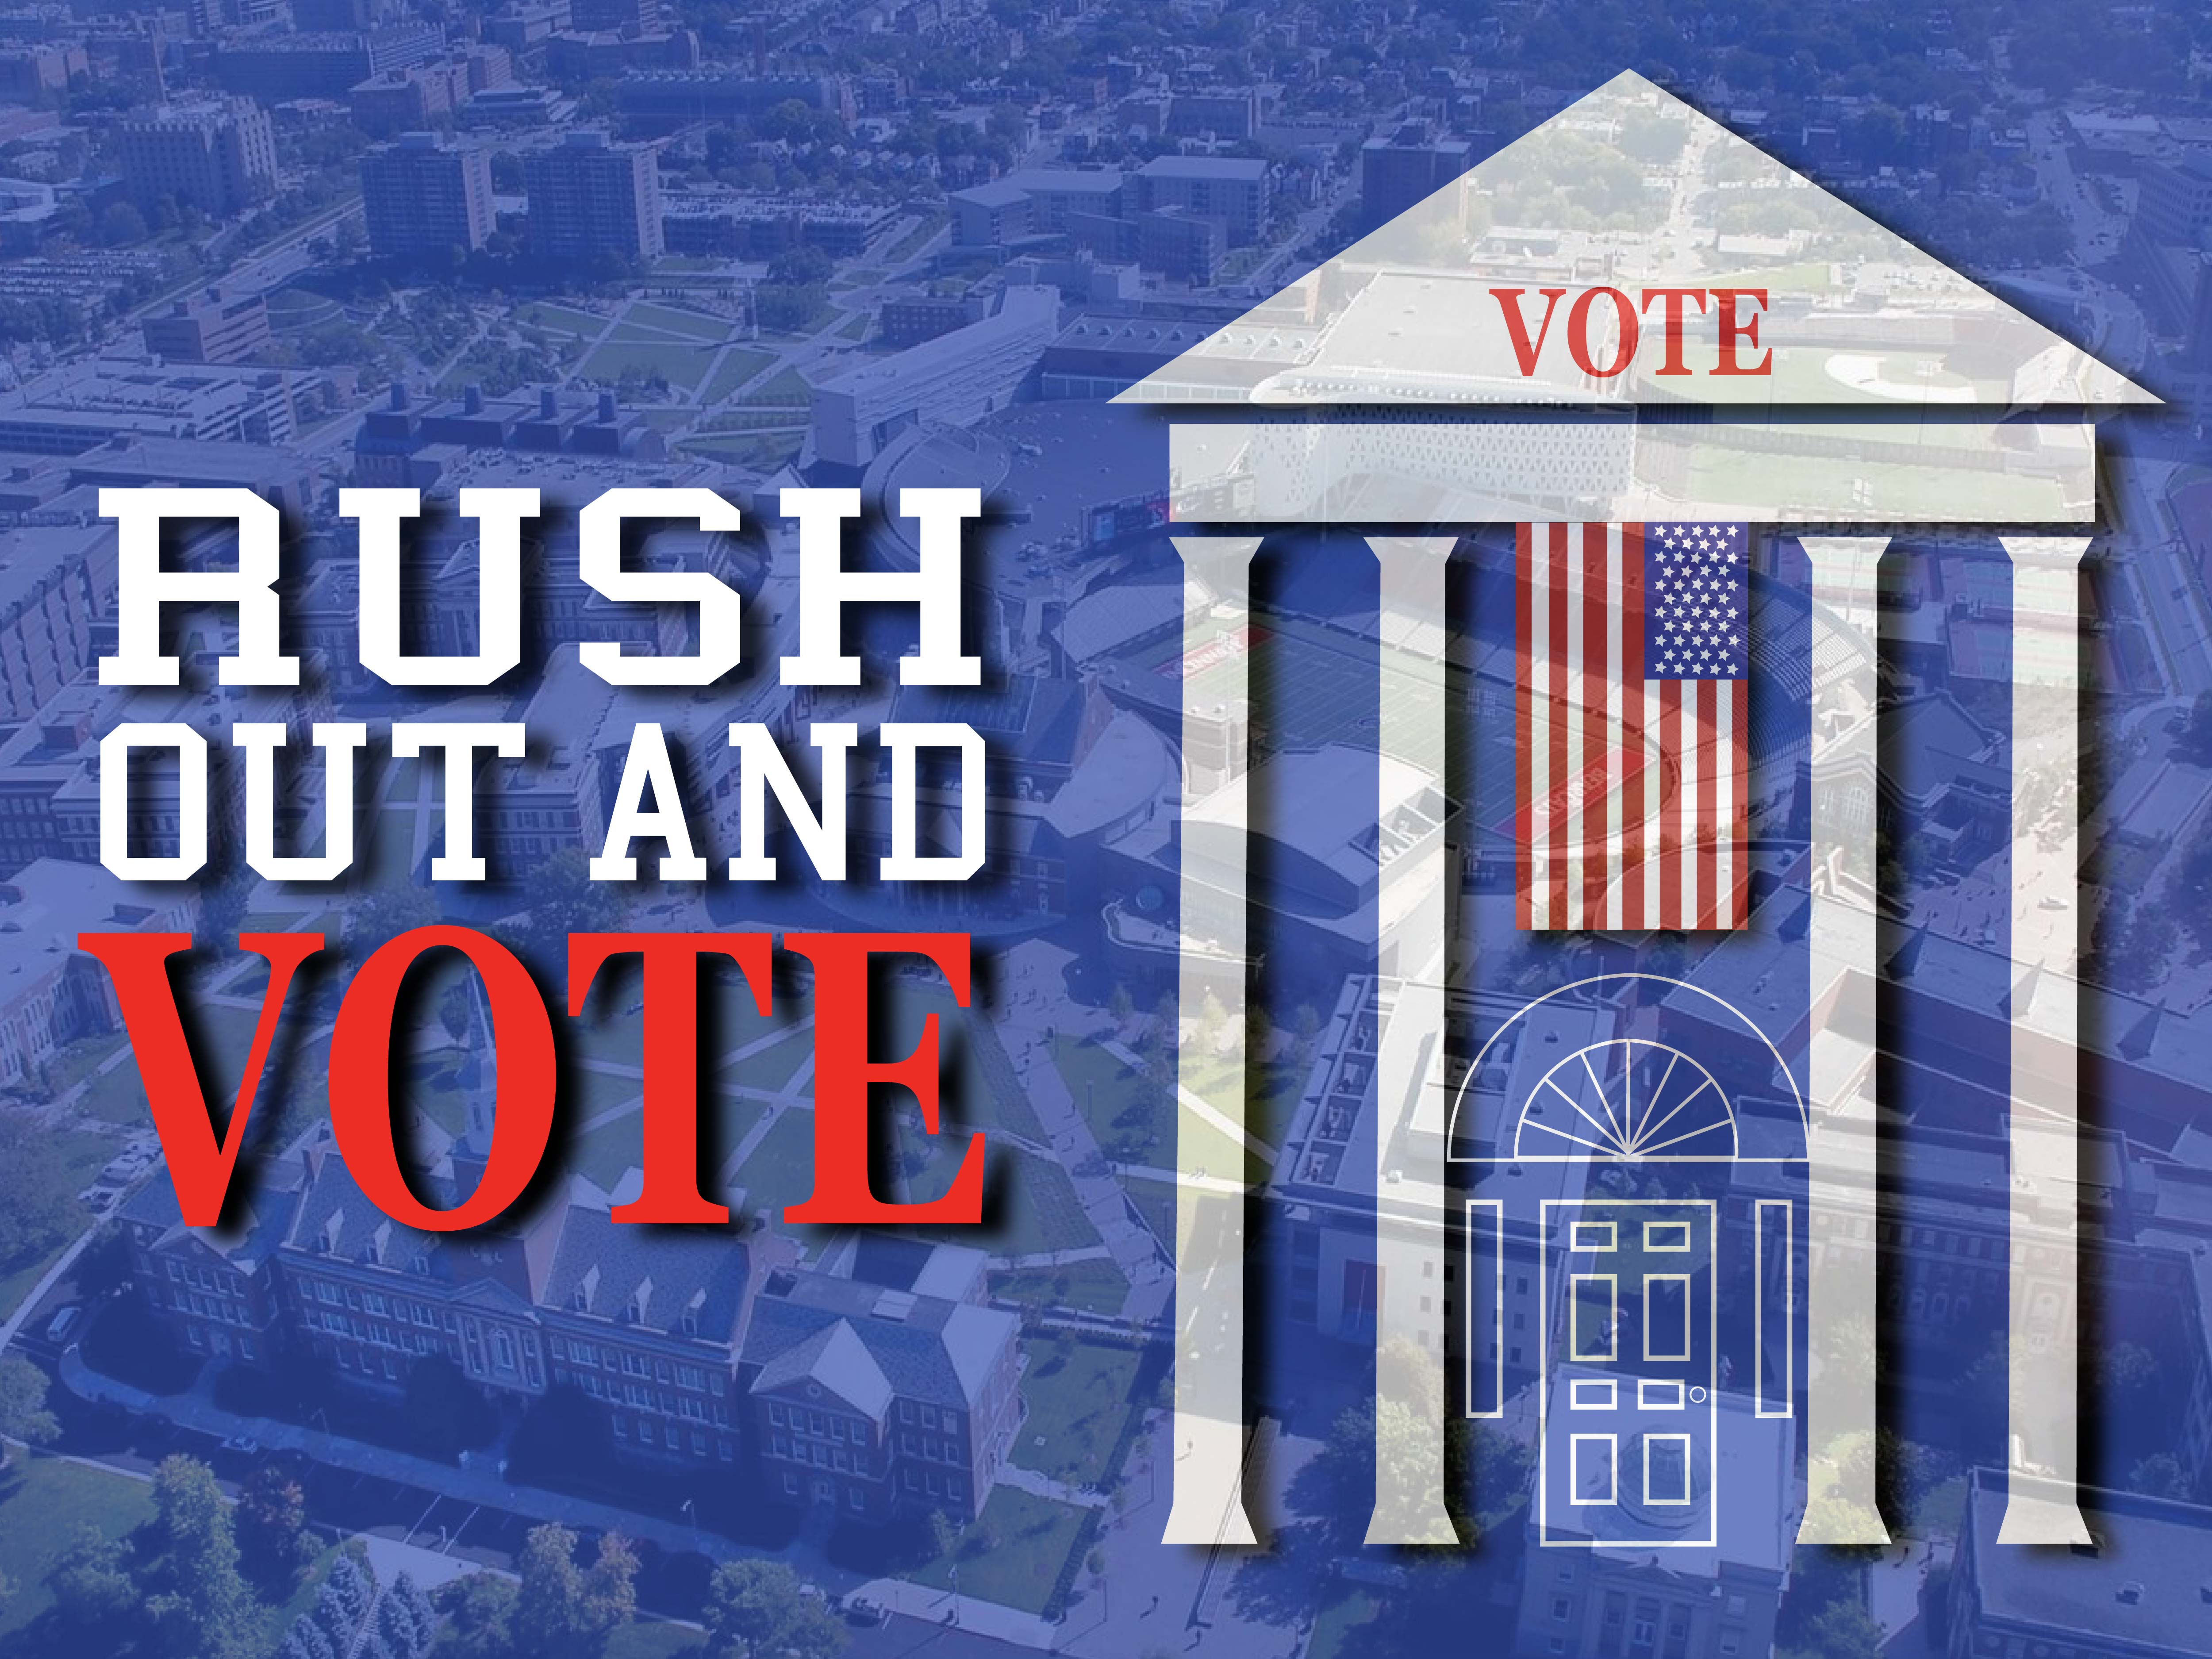 Rush Out and Vote